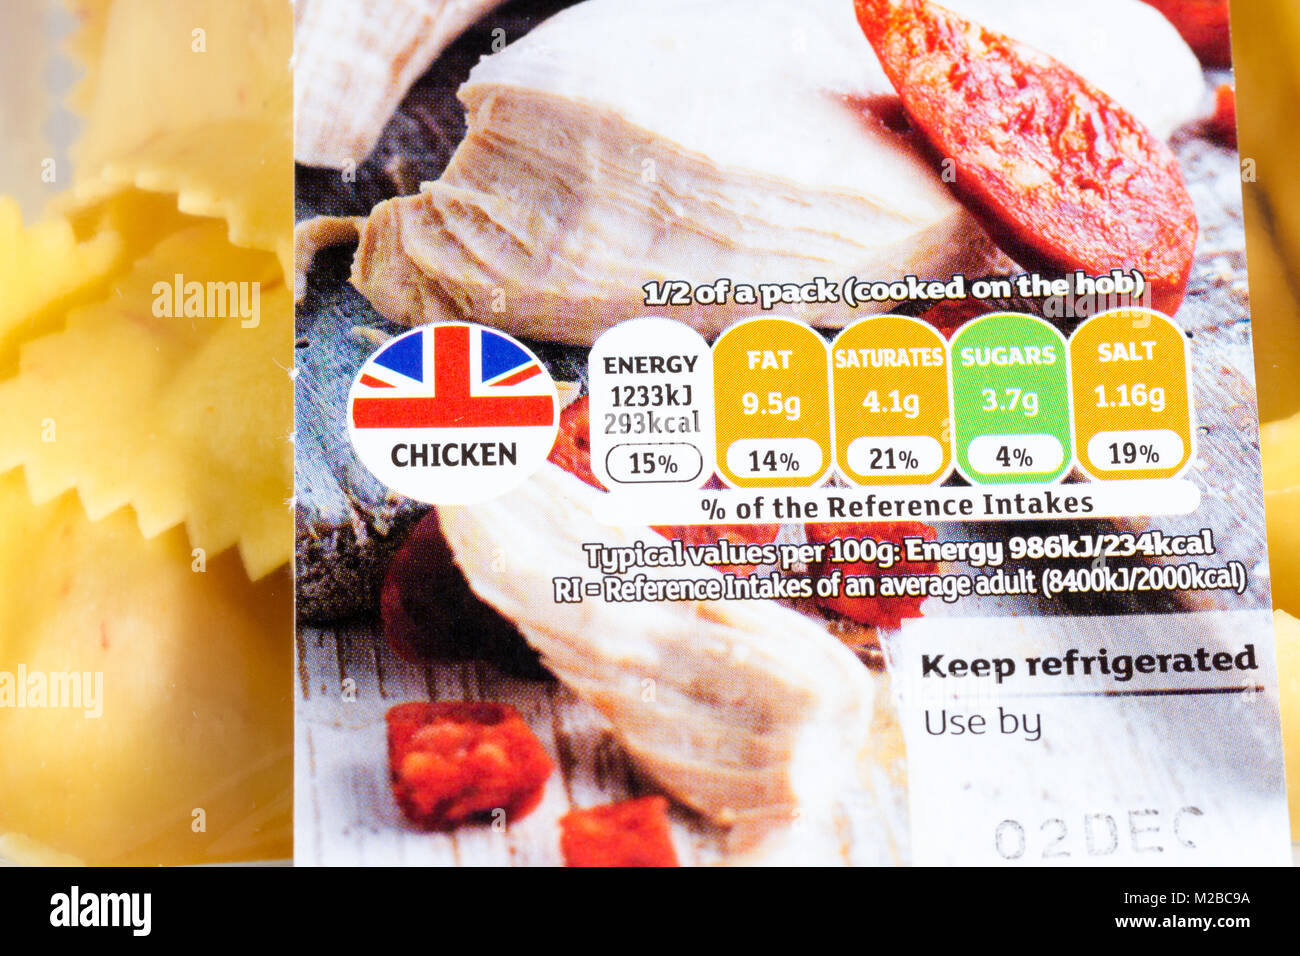 Chicken pasta food label close up showing traffic light rating system & use by date, United Kingdom - Stock Image